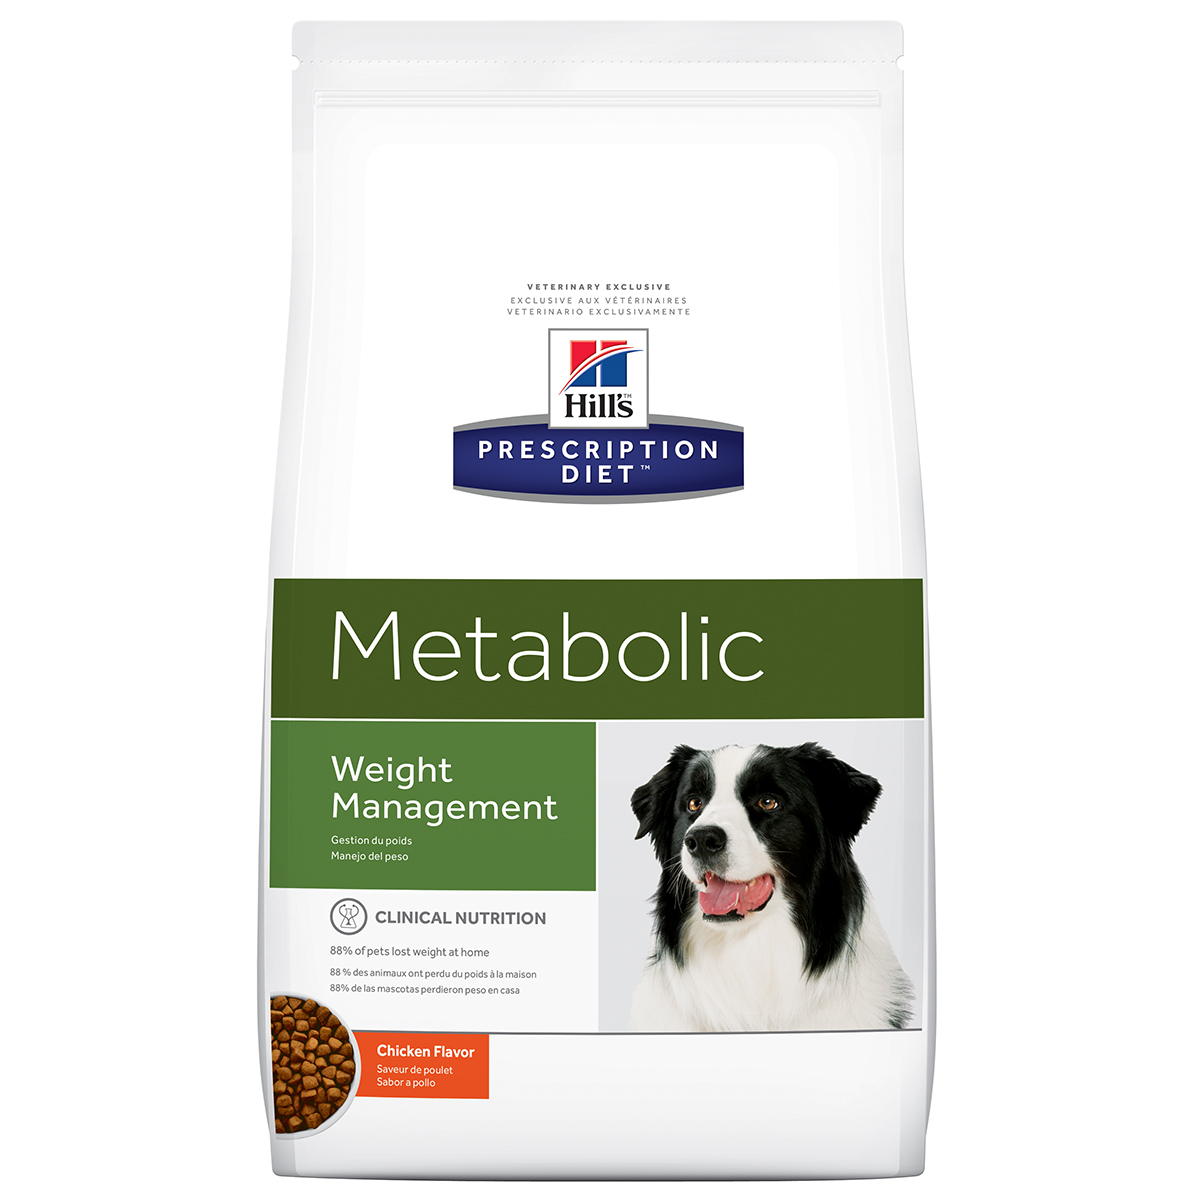 Hills Prescription Diet Alimento Para Perro  Metabolic